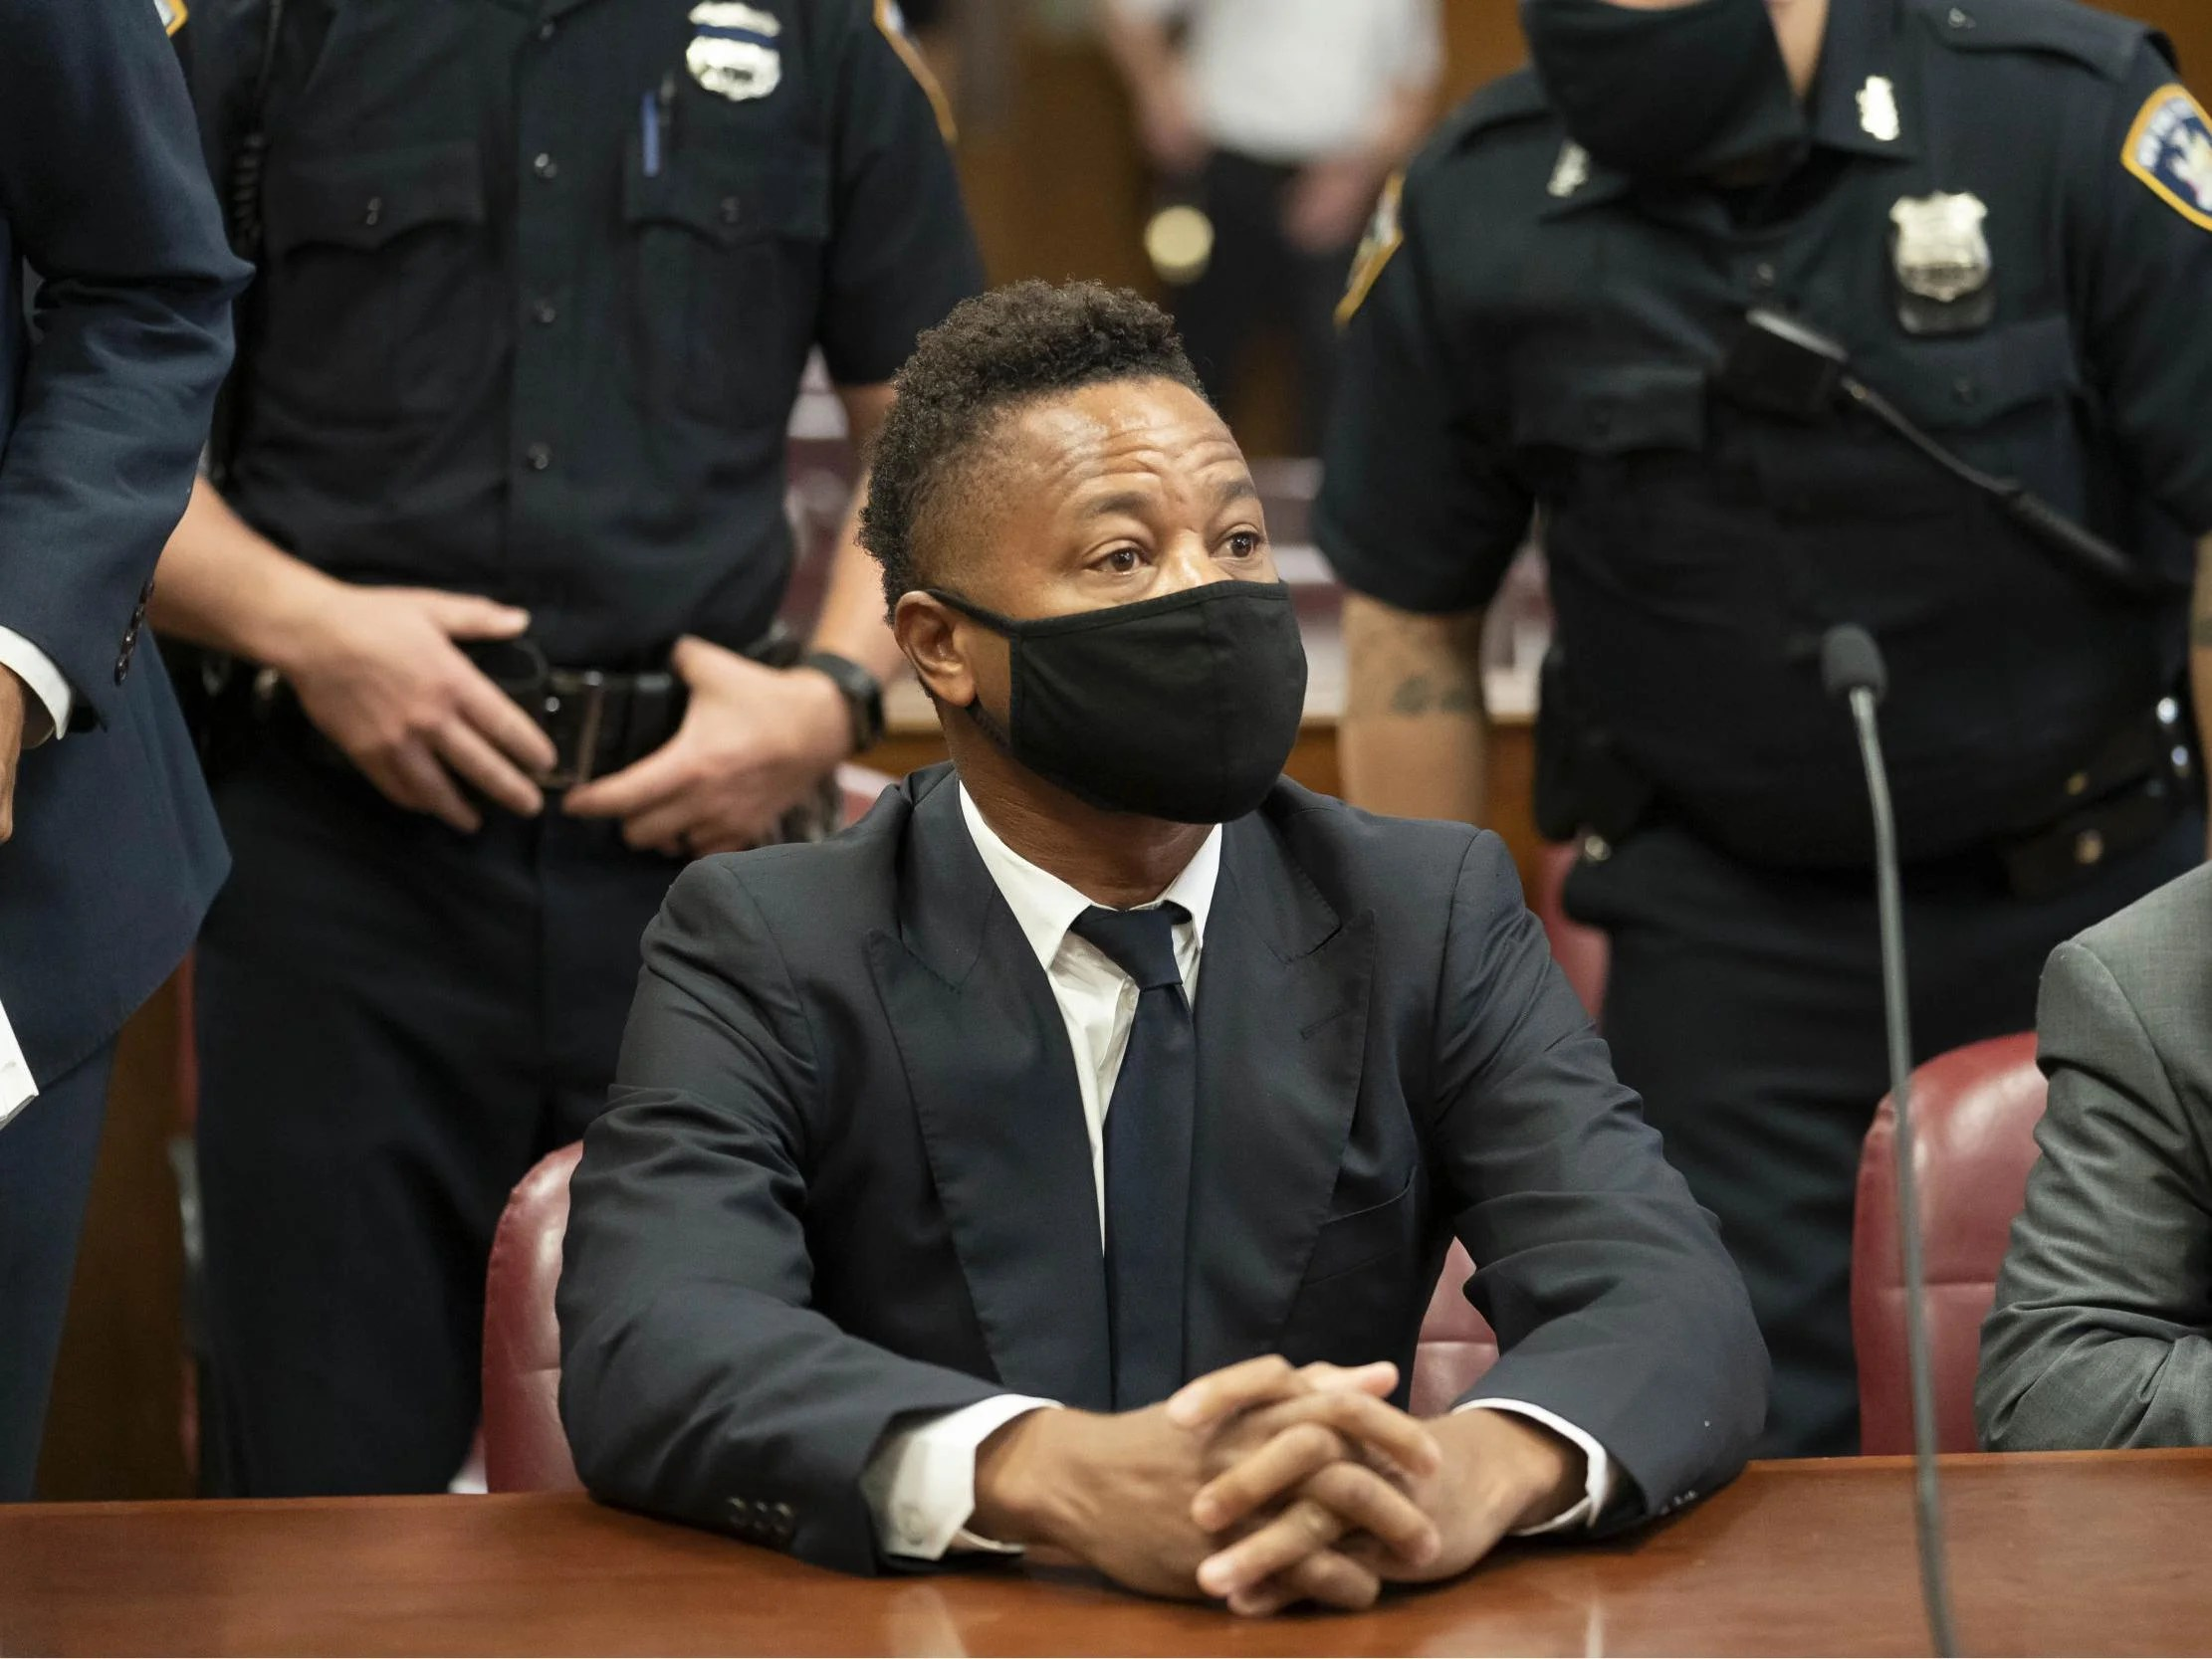 30 women have come forward with groping accusations against Cuba Gooding Jr.